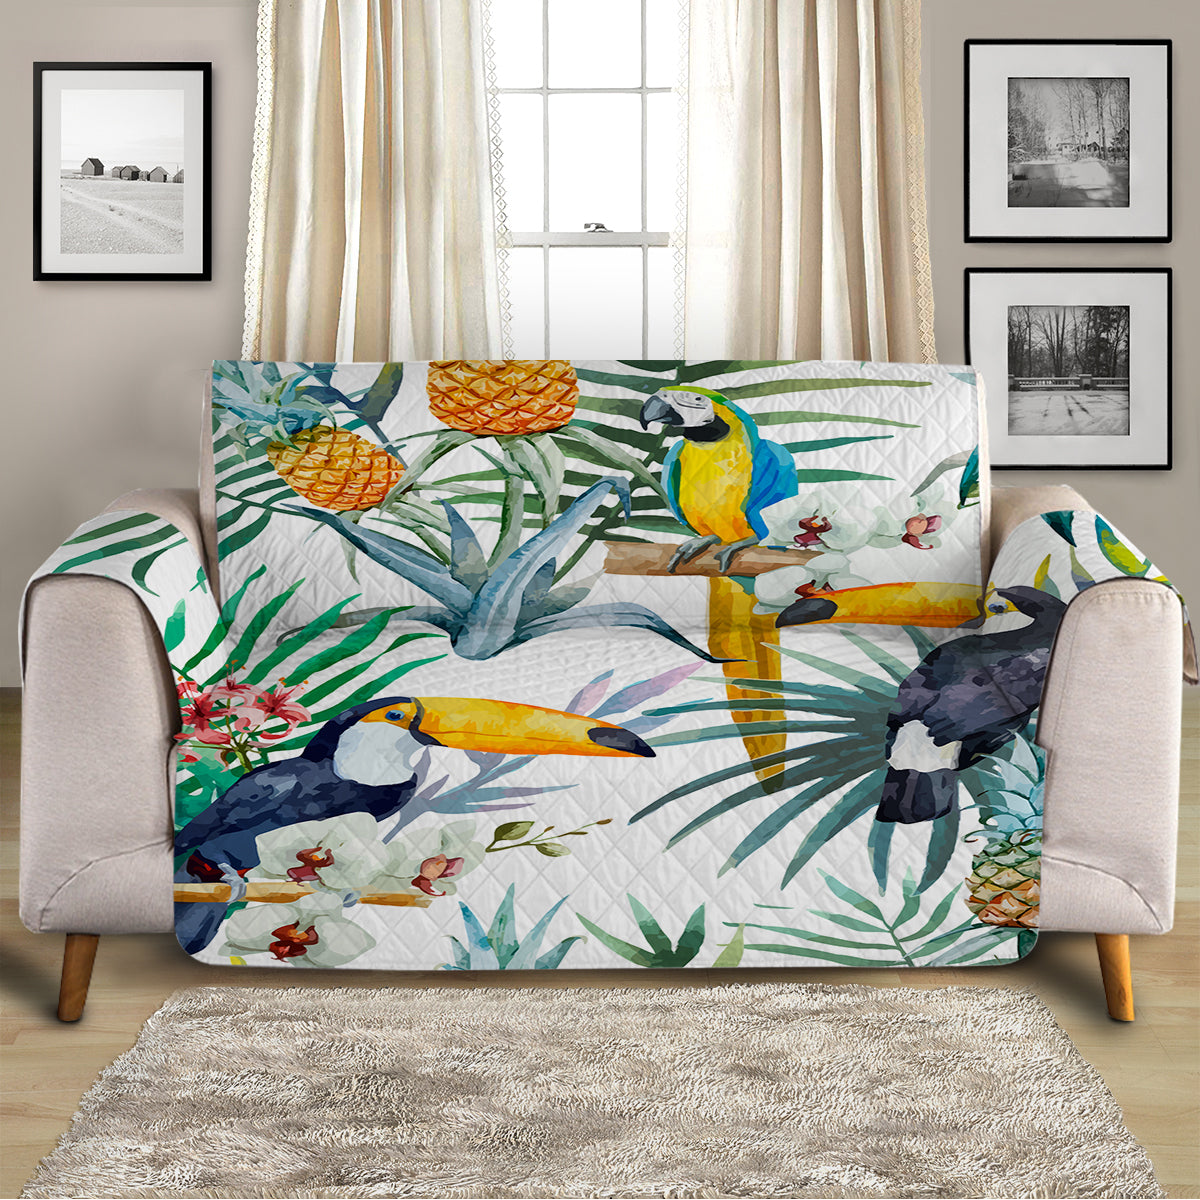 Tropical Jungle Sofa Cover